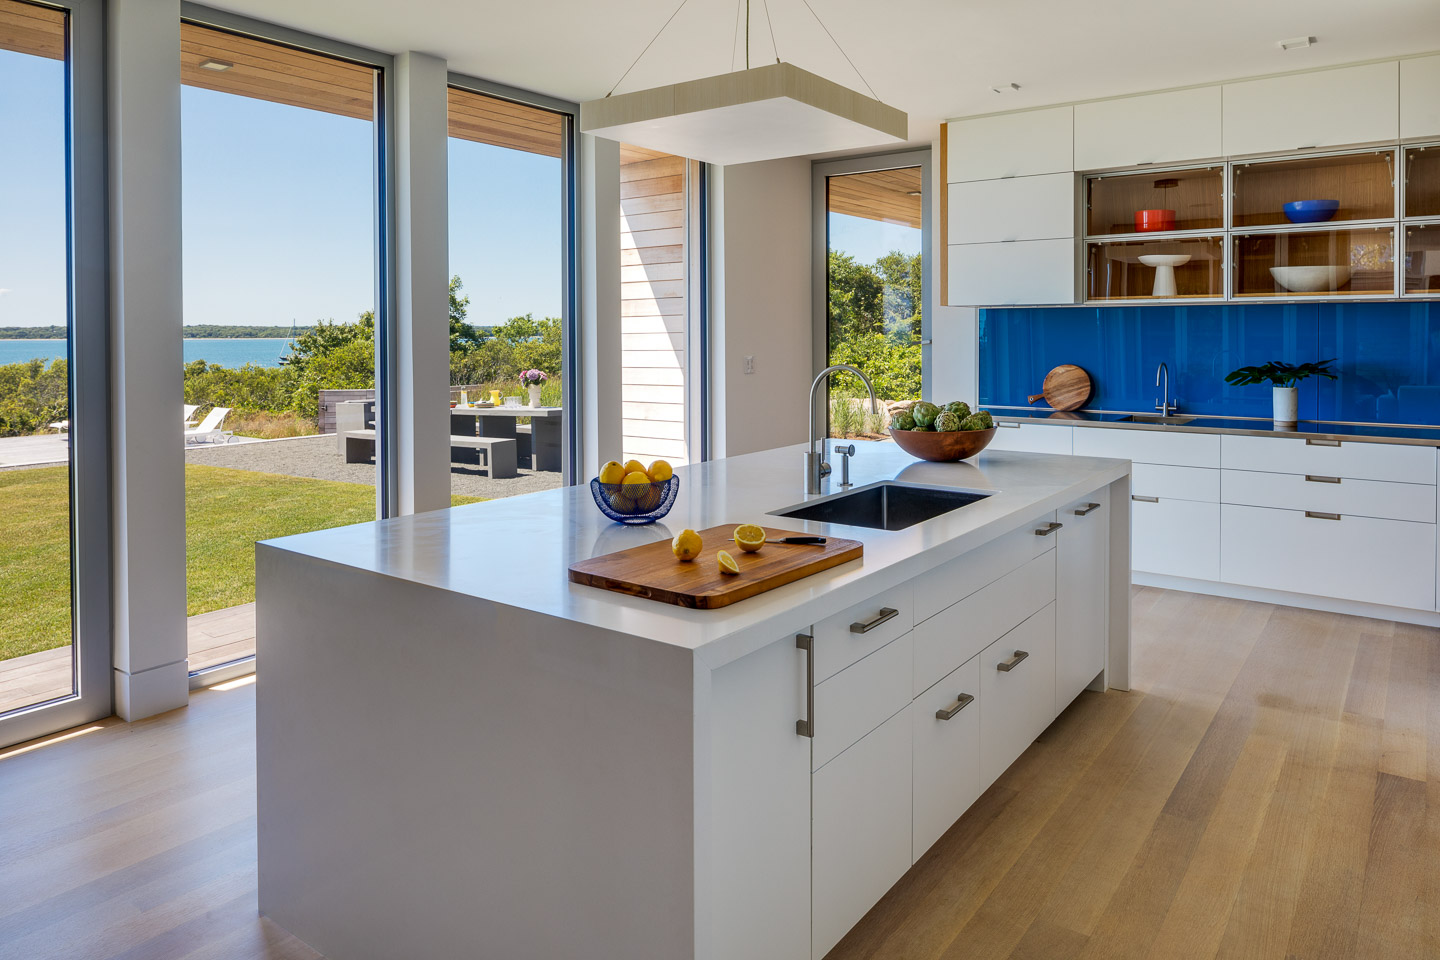 Modern kitchen with a view